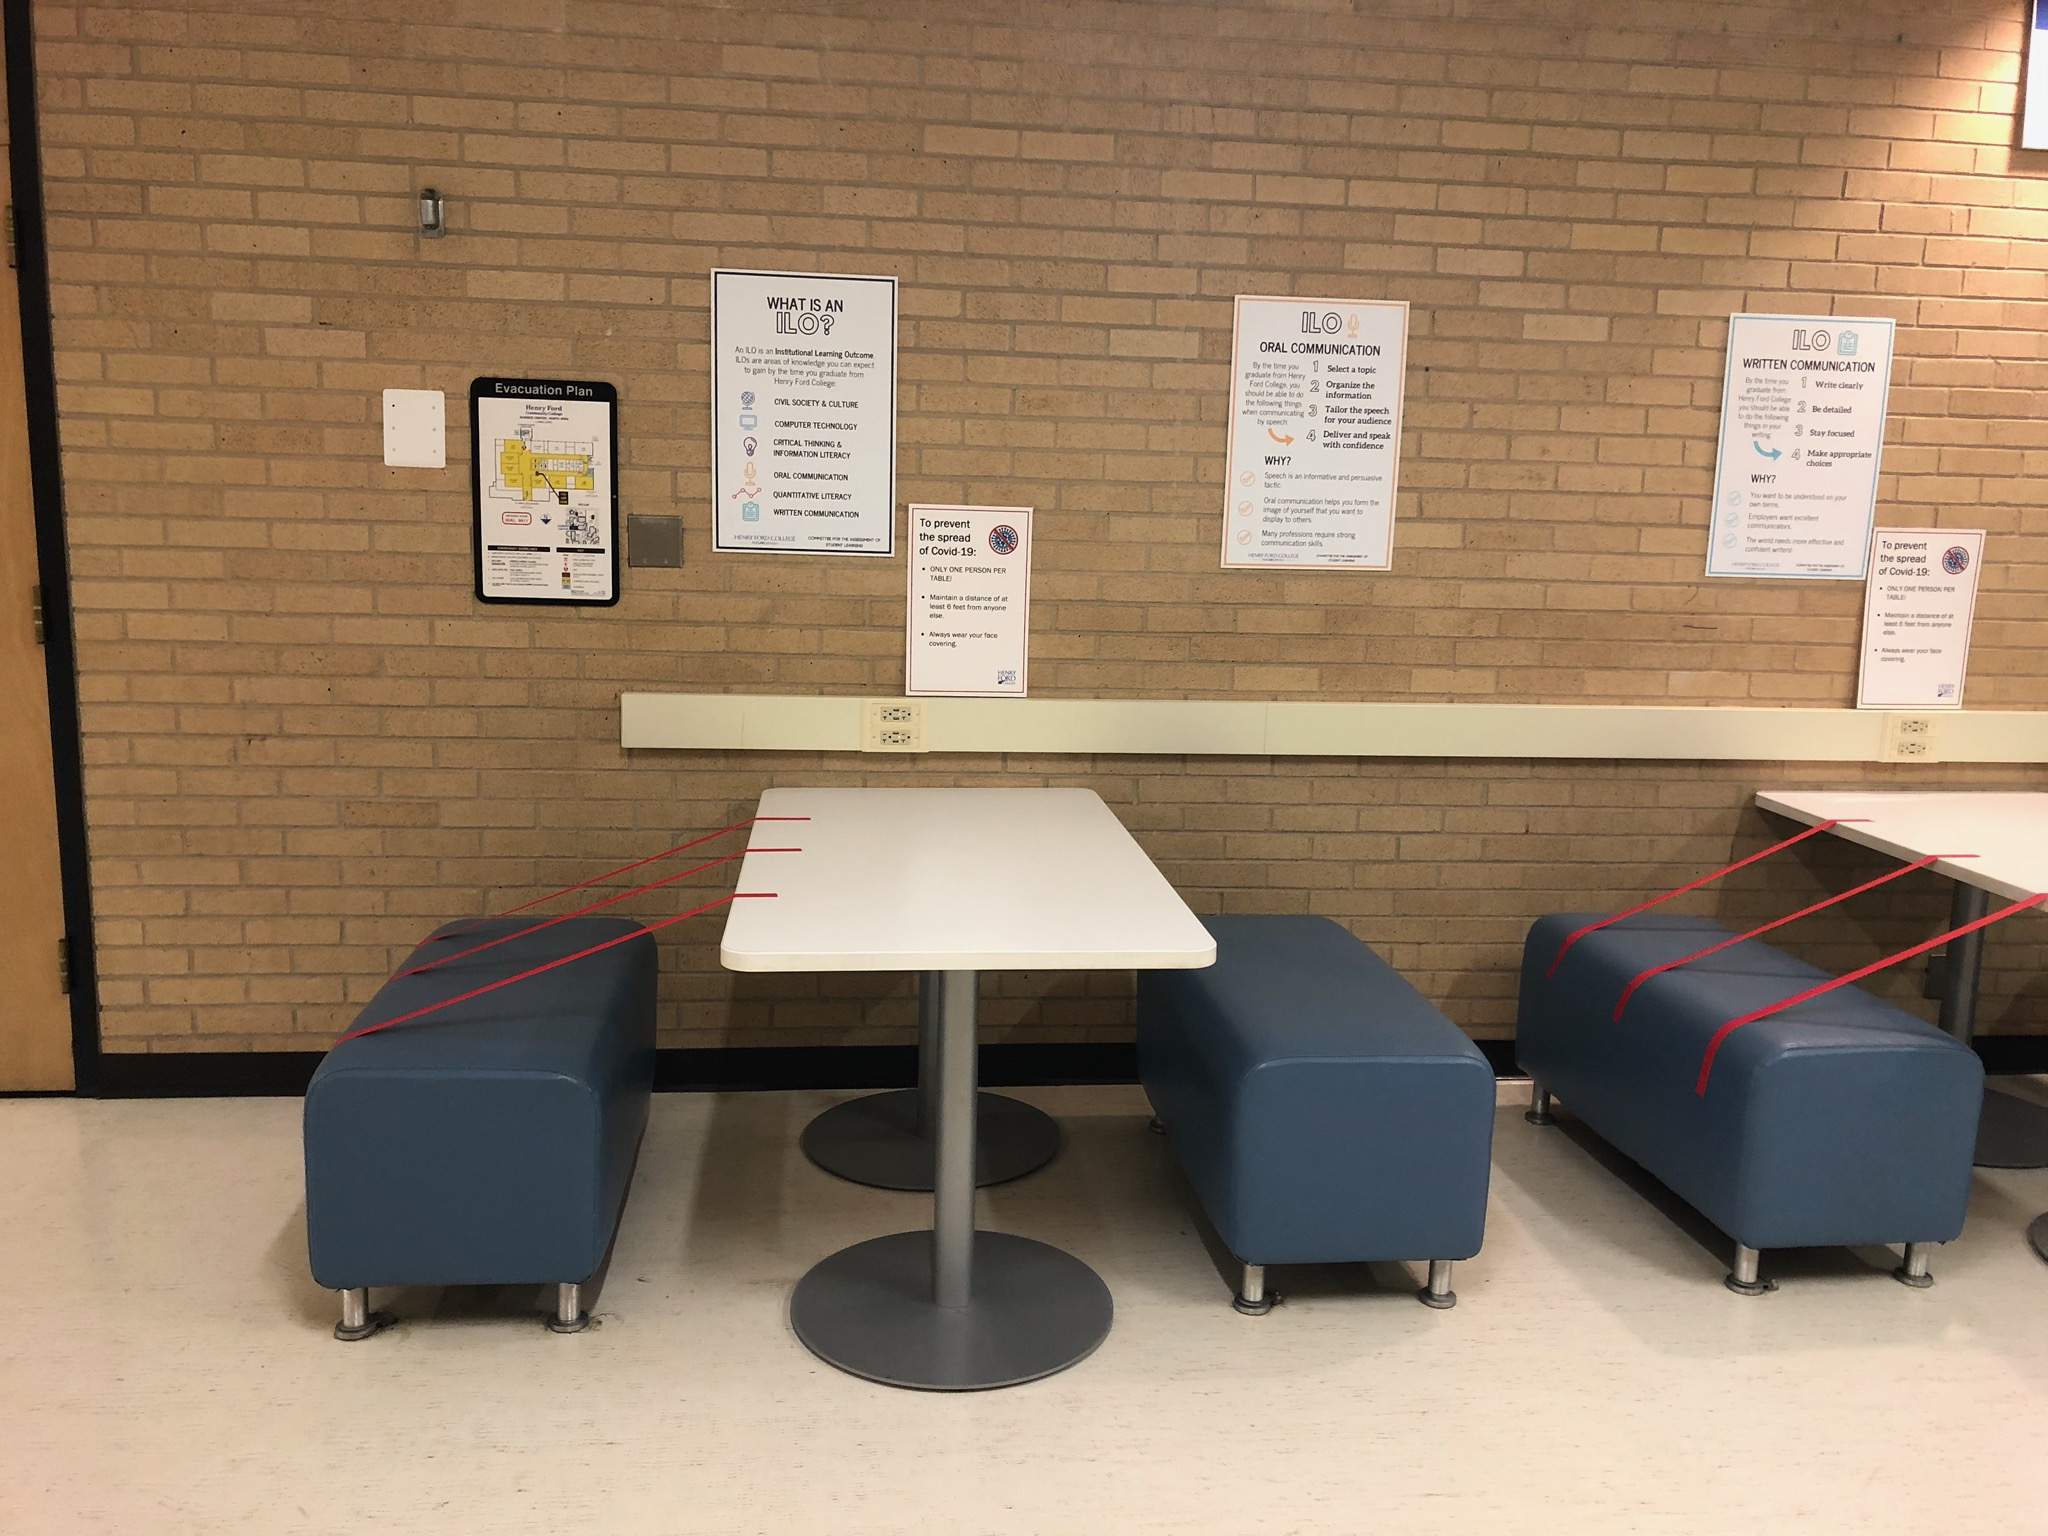 Chairs outside of biology classroom that are sectioned off with red colored tape to facilitate social distancing measures. Sign to display protocols to help prevent virus spread. Photo taken by Ms. Alice Hull